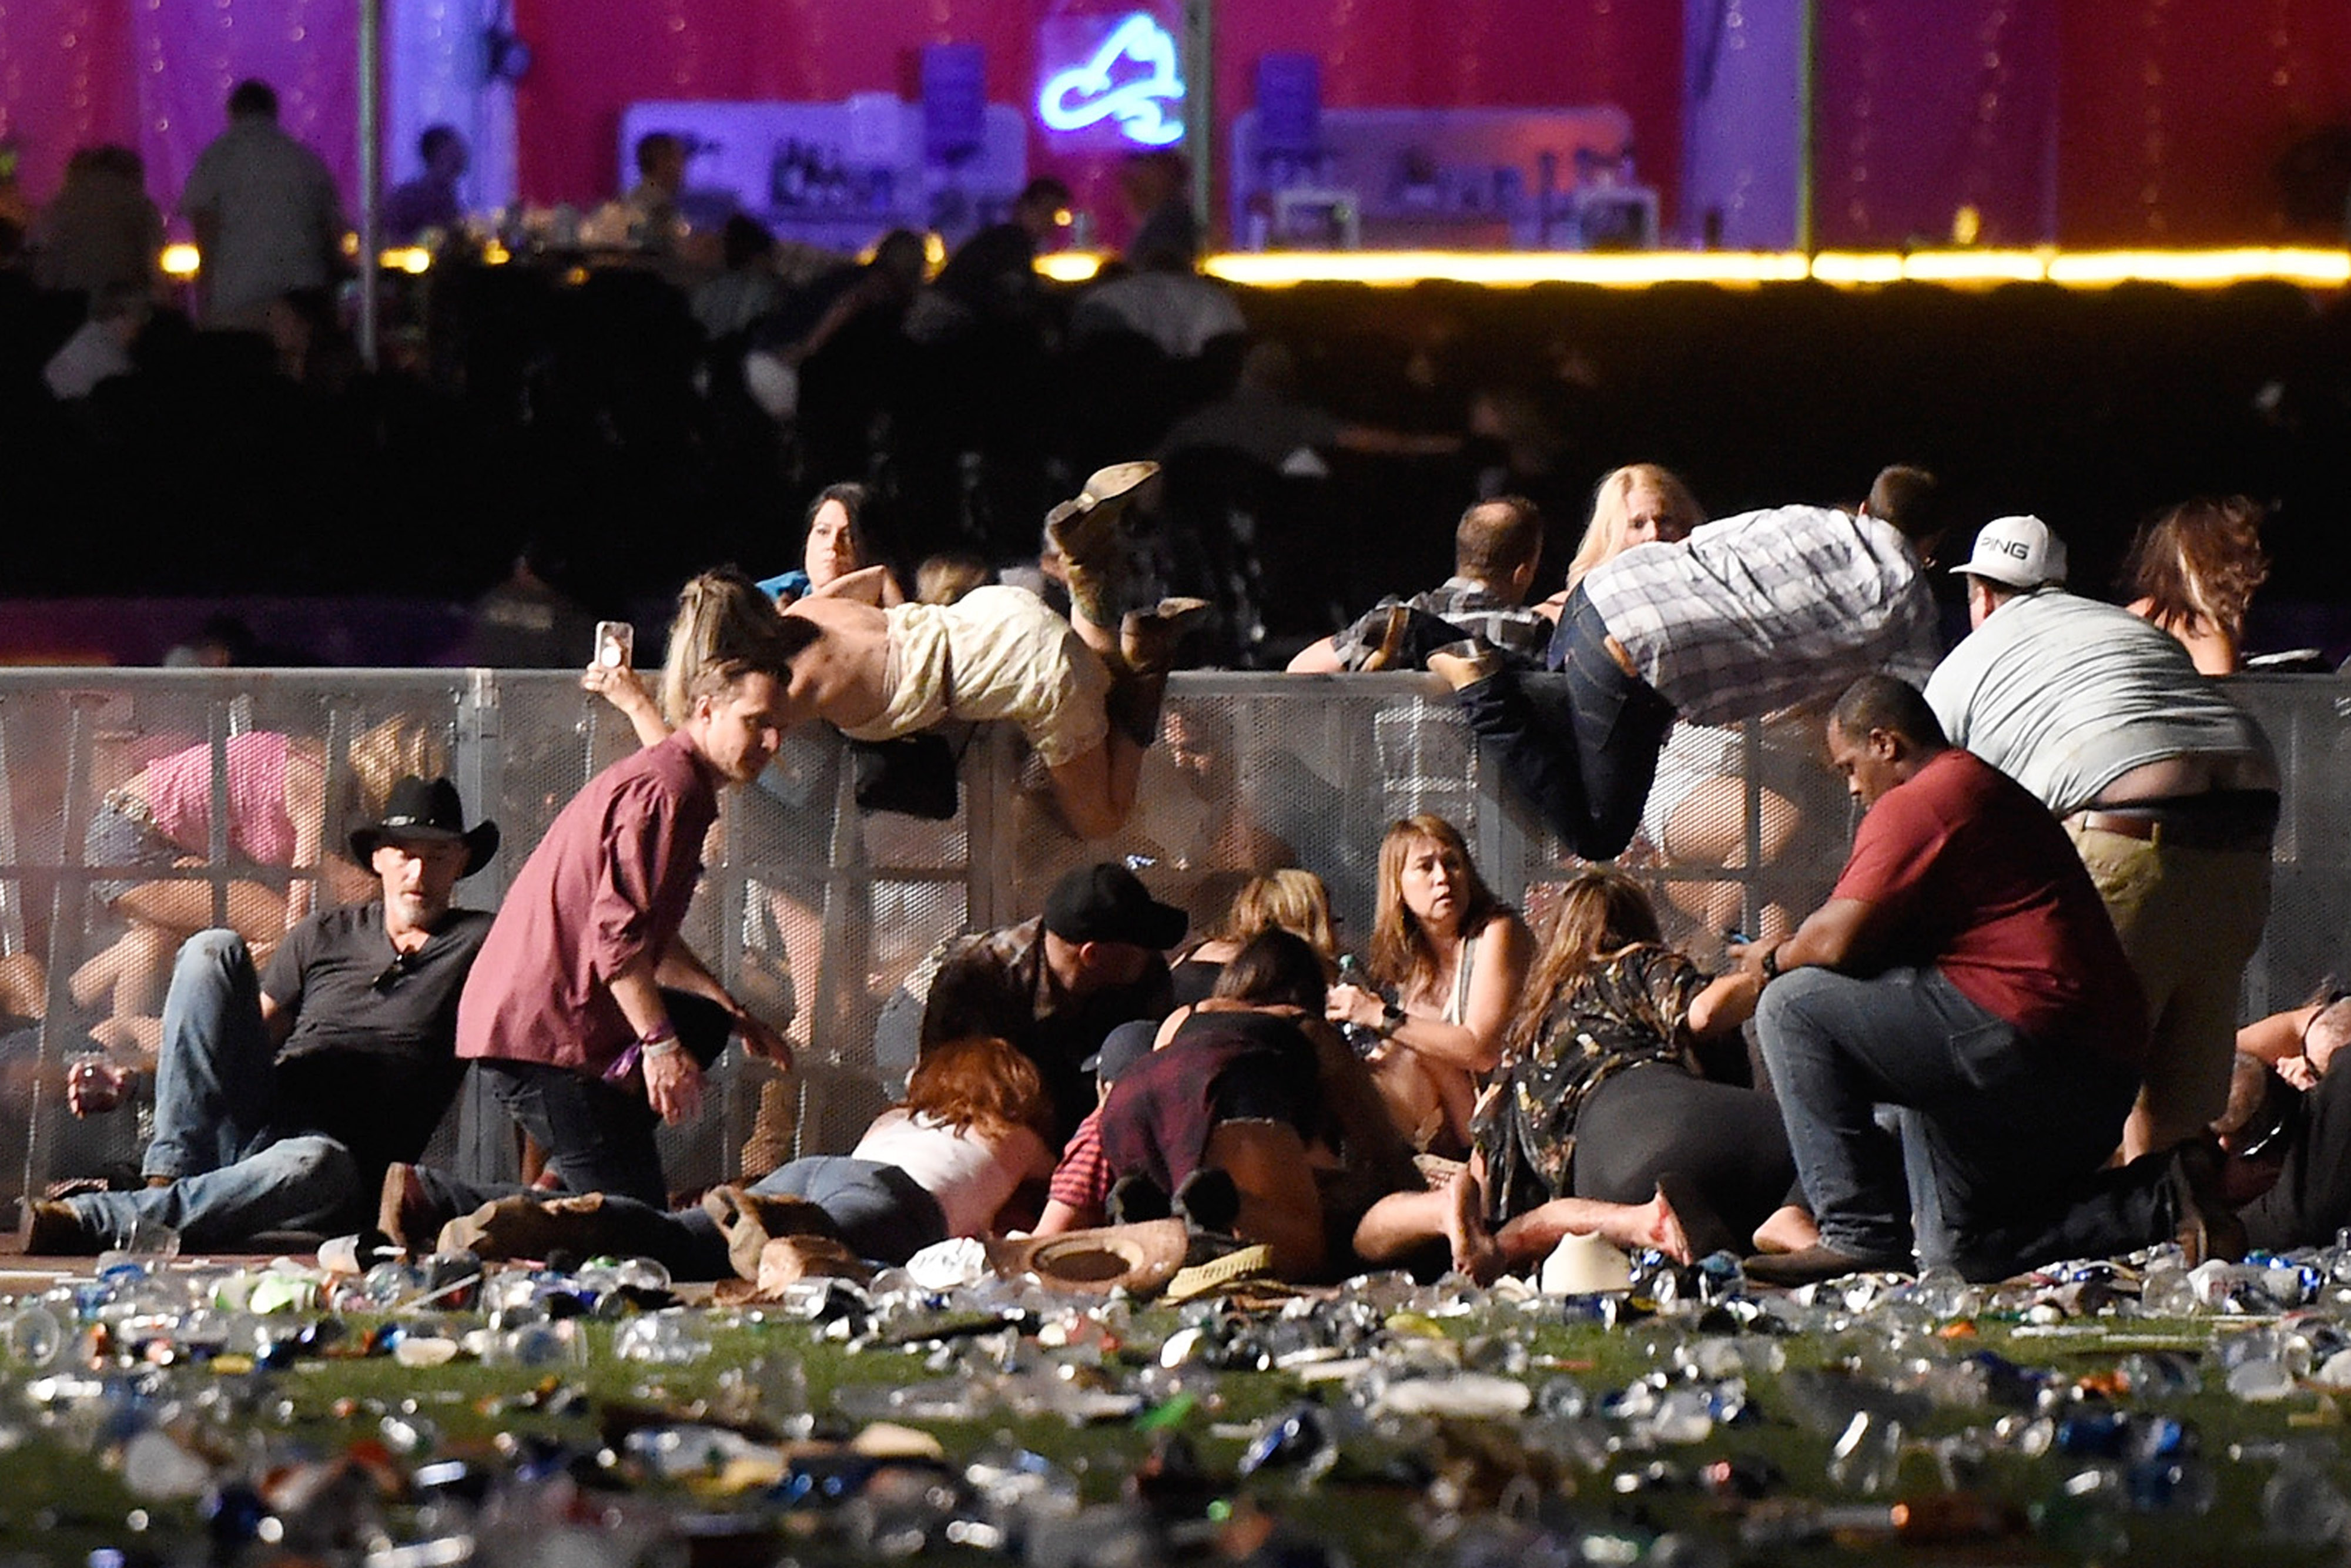 Las Vegas shooting: Trump offers no solutions for mass shootings